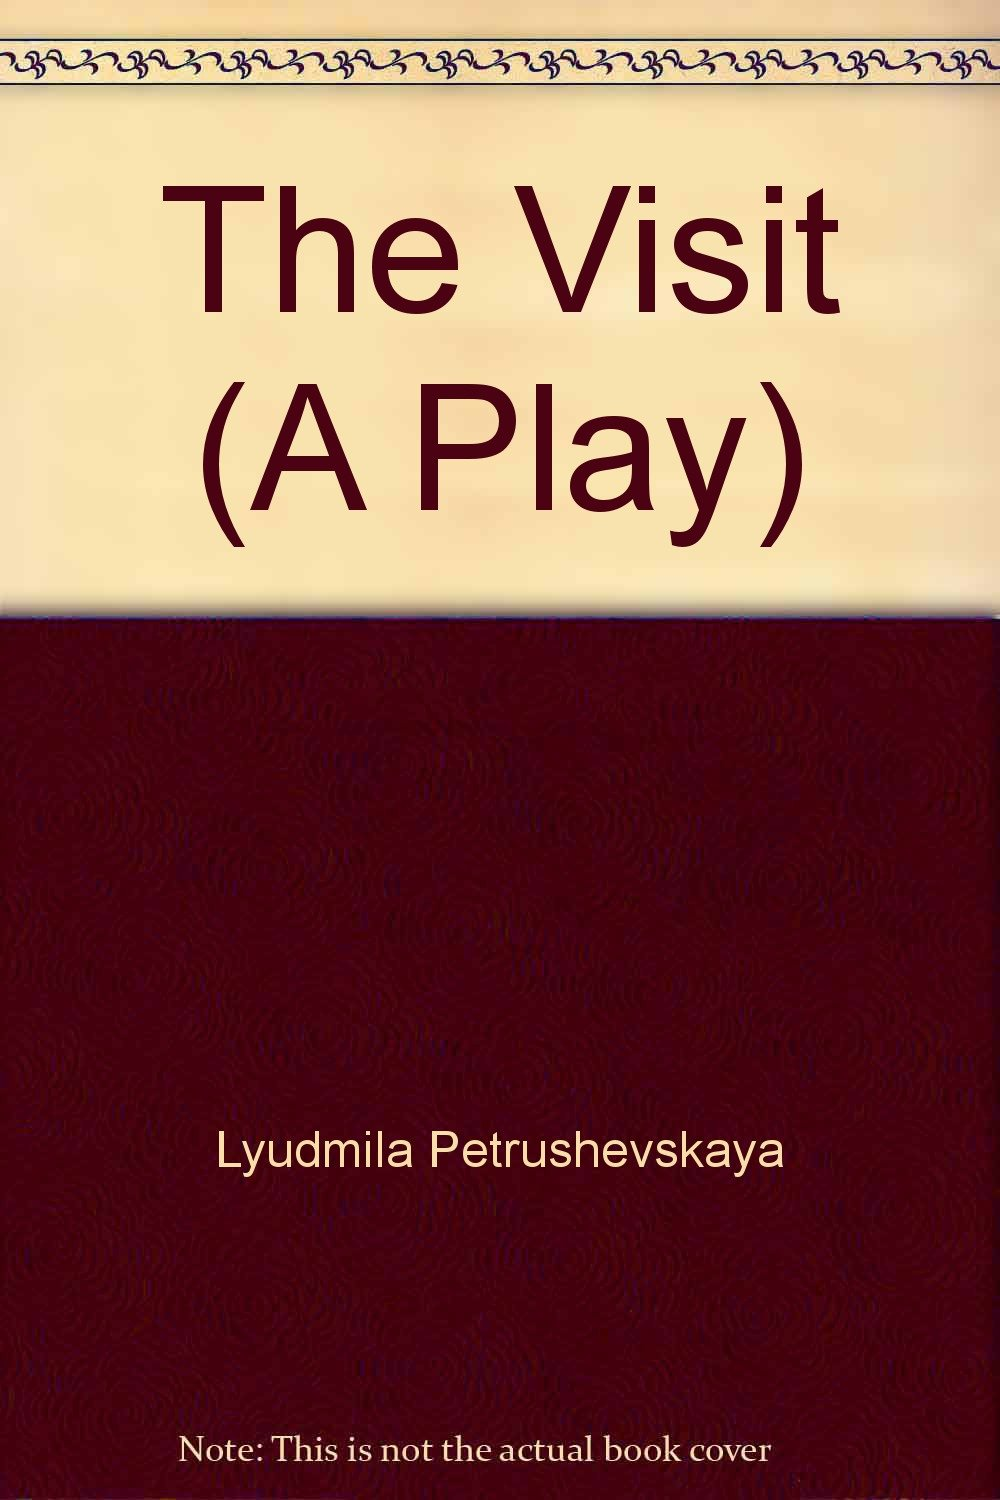 Books by Lyudmila Petrushevskaya. Reviews